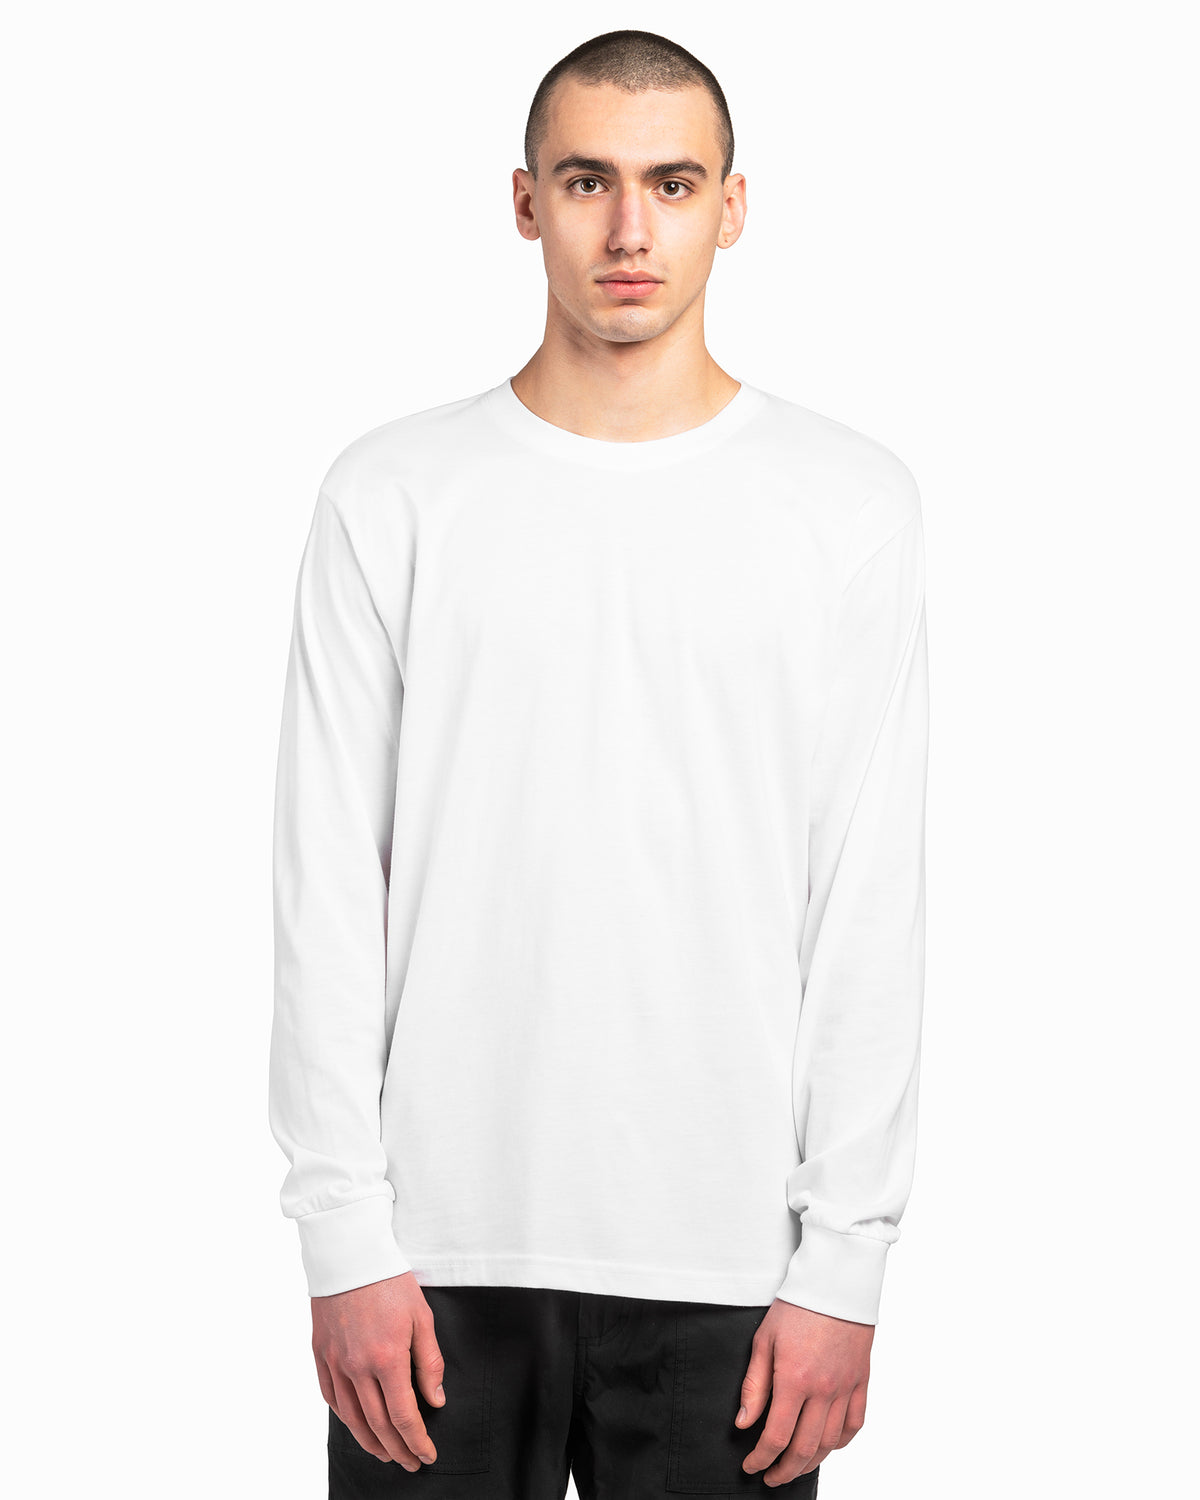 White American Grown Supima® 100% Cotton 6oz Long Sleeve T-Shirt